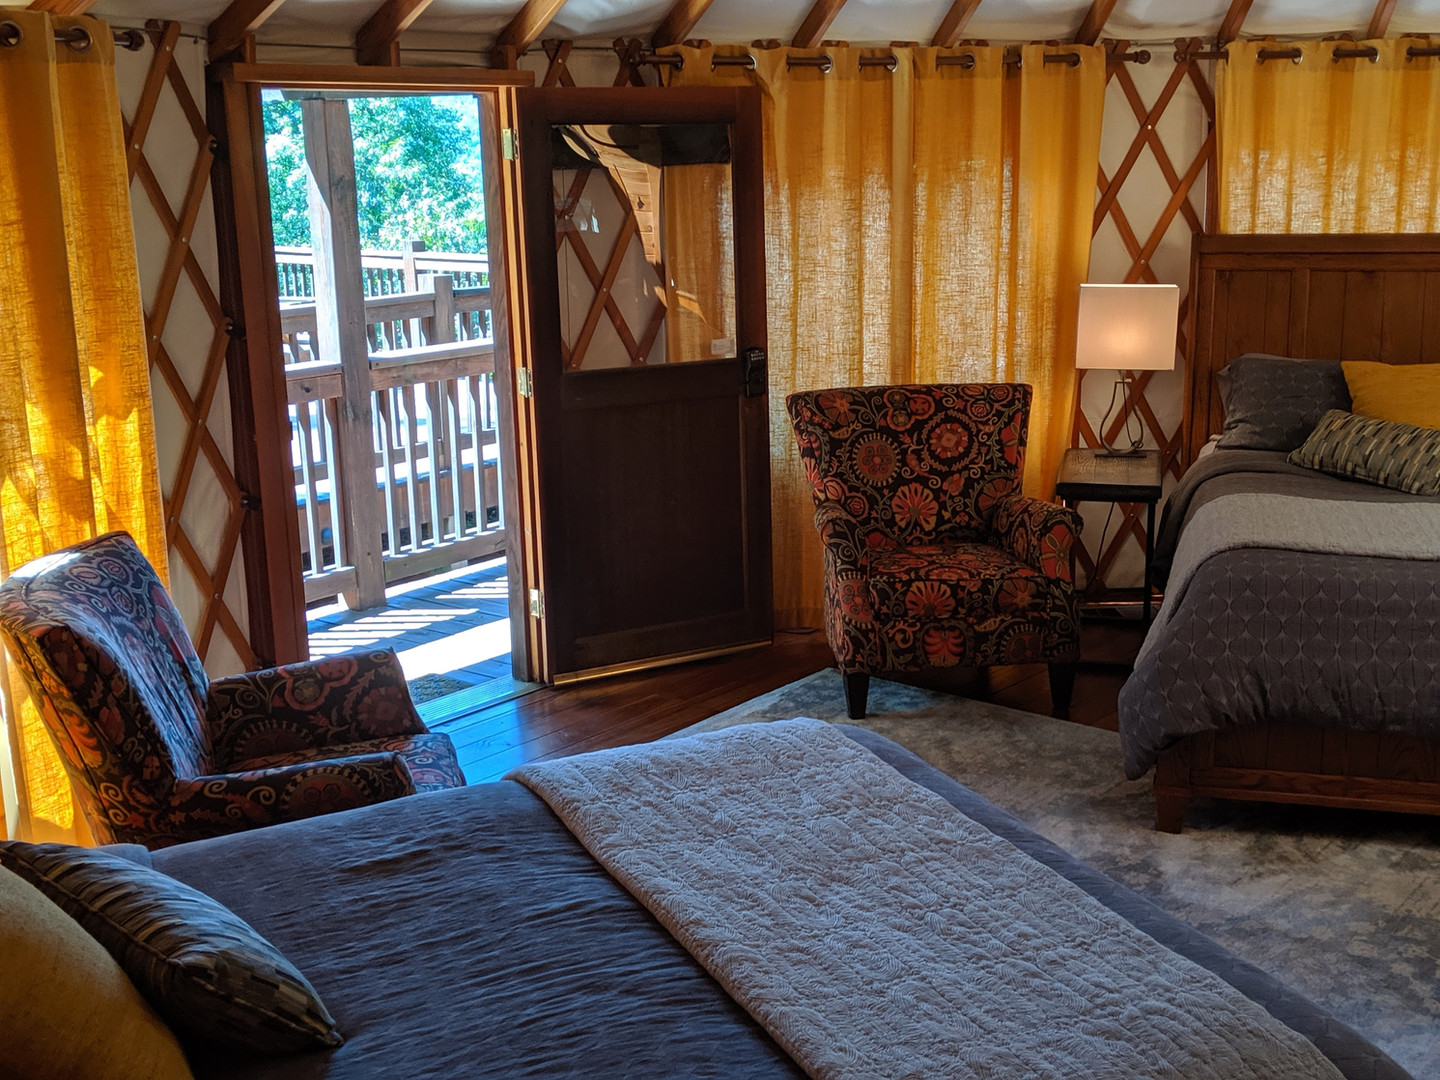 Two queen beds with lush Crate & Barrel linens await guests in the Tsali yurt.